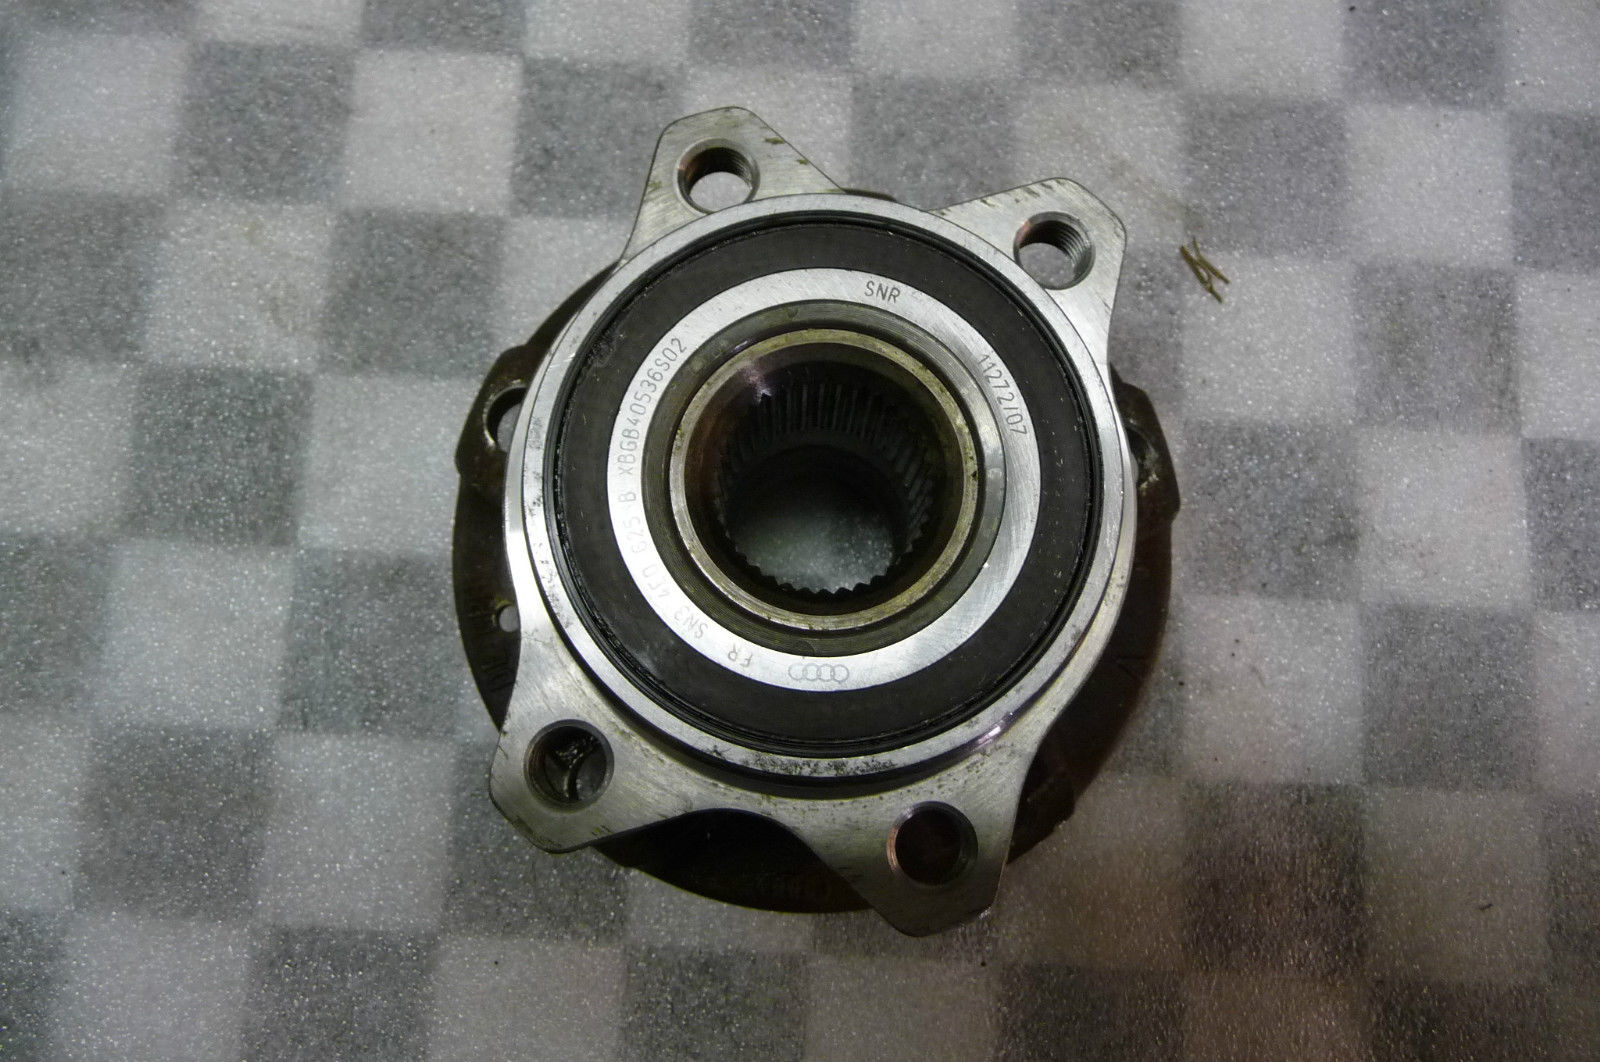 2004 2005 2006 2007 2008 2009 2010 2011 2012 2013 2014 Lamborghini Gallardo LP550 LP560 Murcielago Front Bearing with Hub 4E0407613A;  4E0407625D - Used Auto Parts Store | LA Global Parts